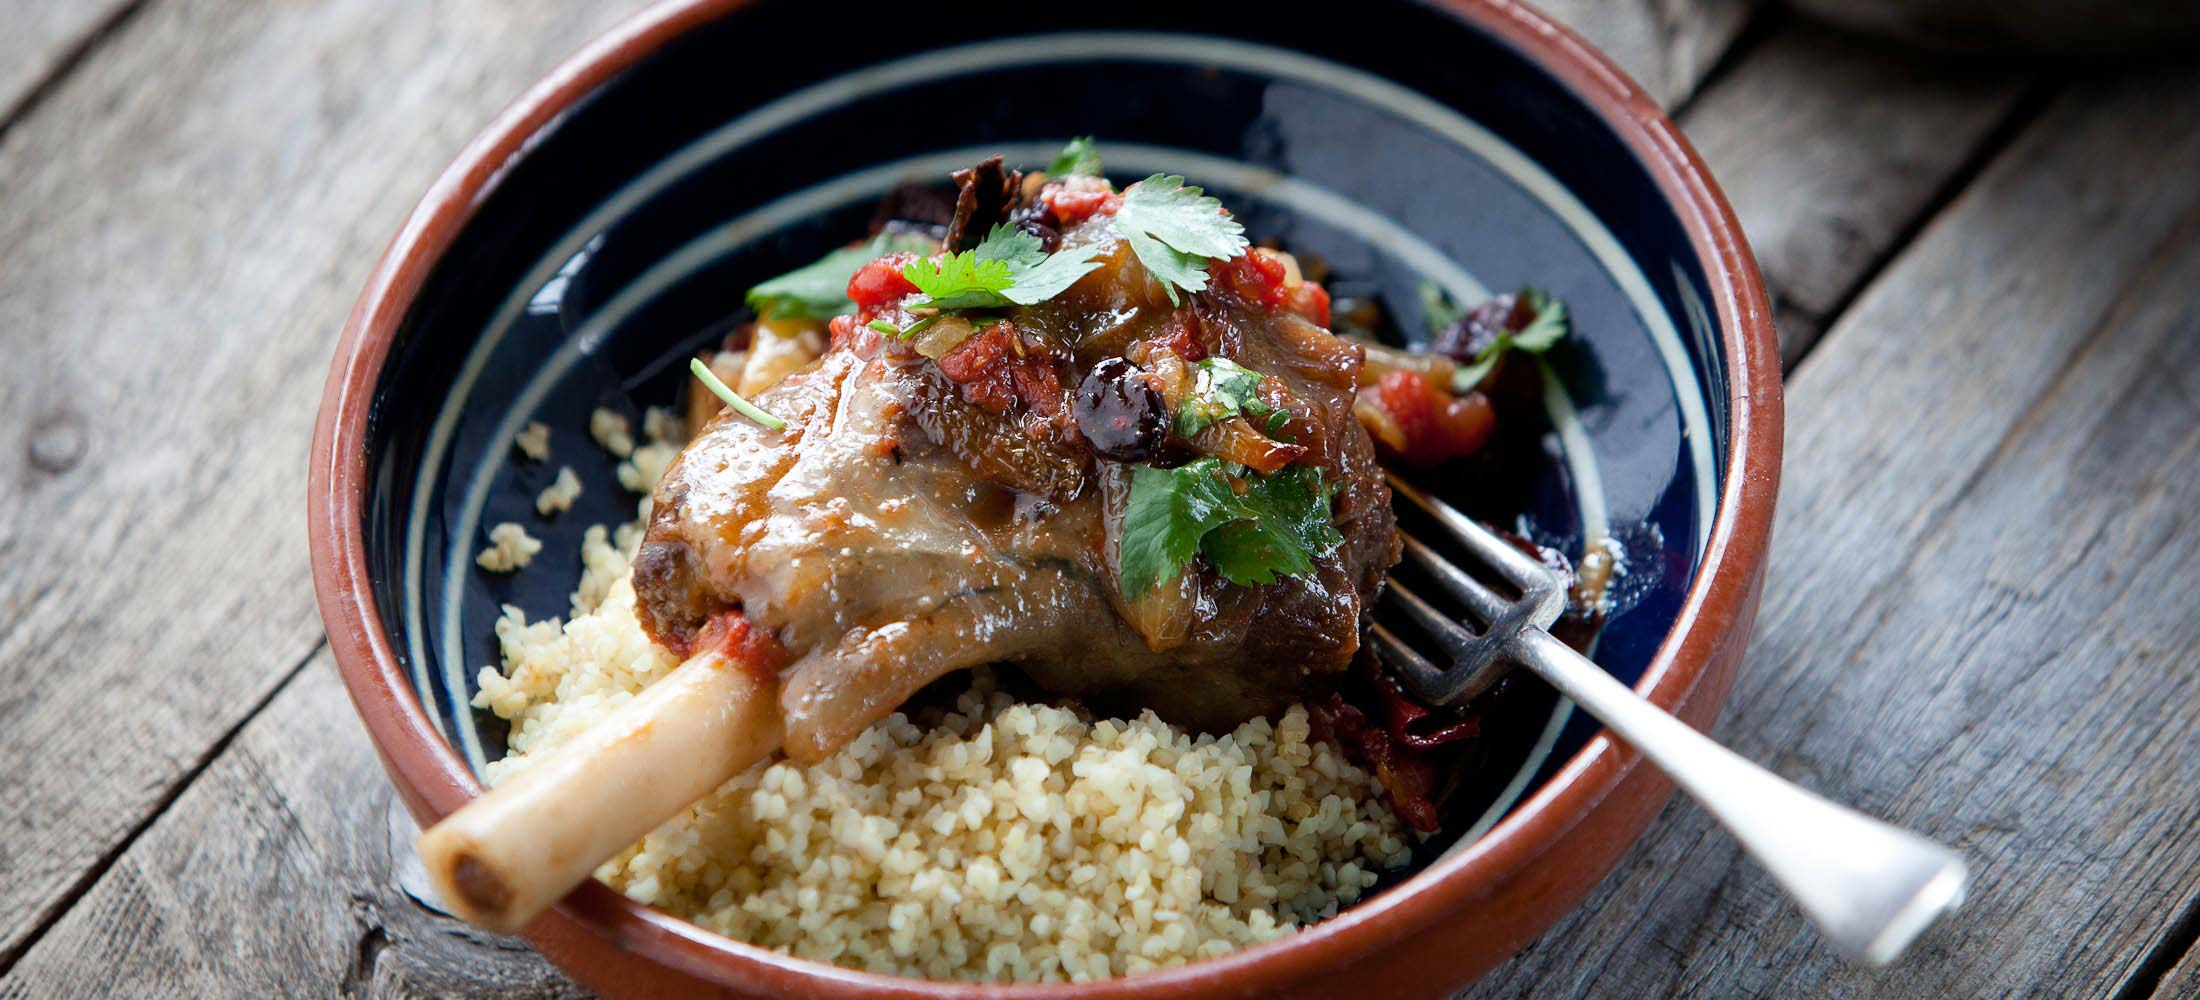 Kid & Quince Tagine